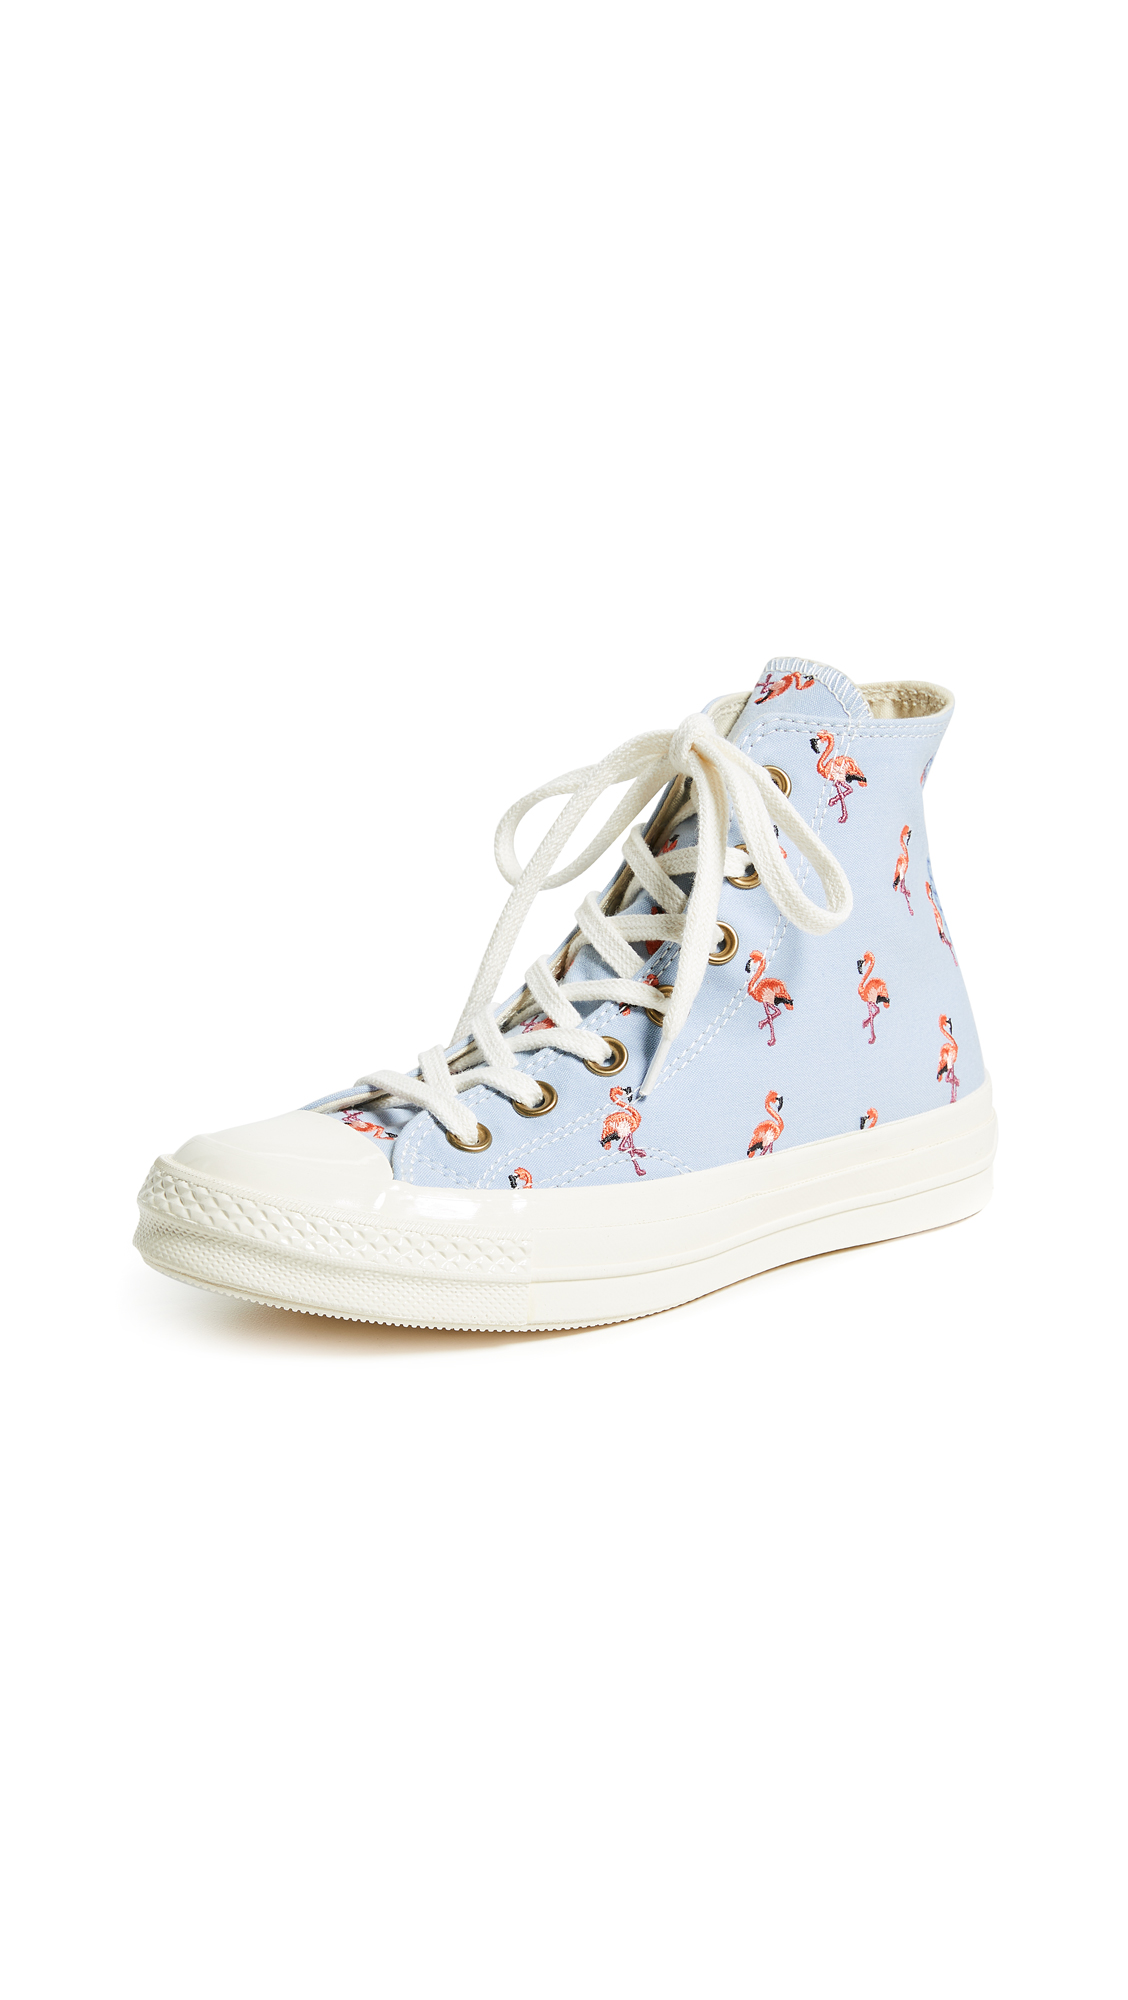 Converse Chuck Taylor All Star 70 High Top Sneakers - Blue Chilli